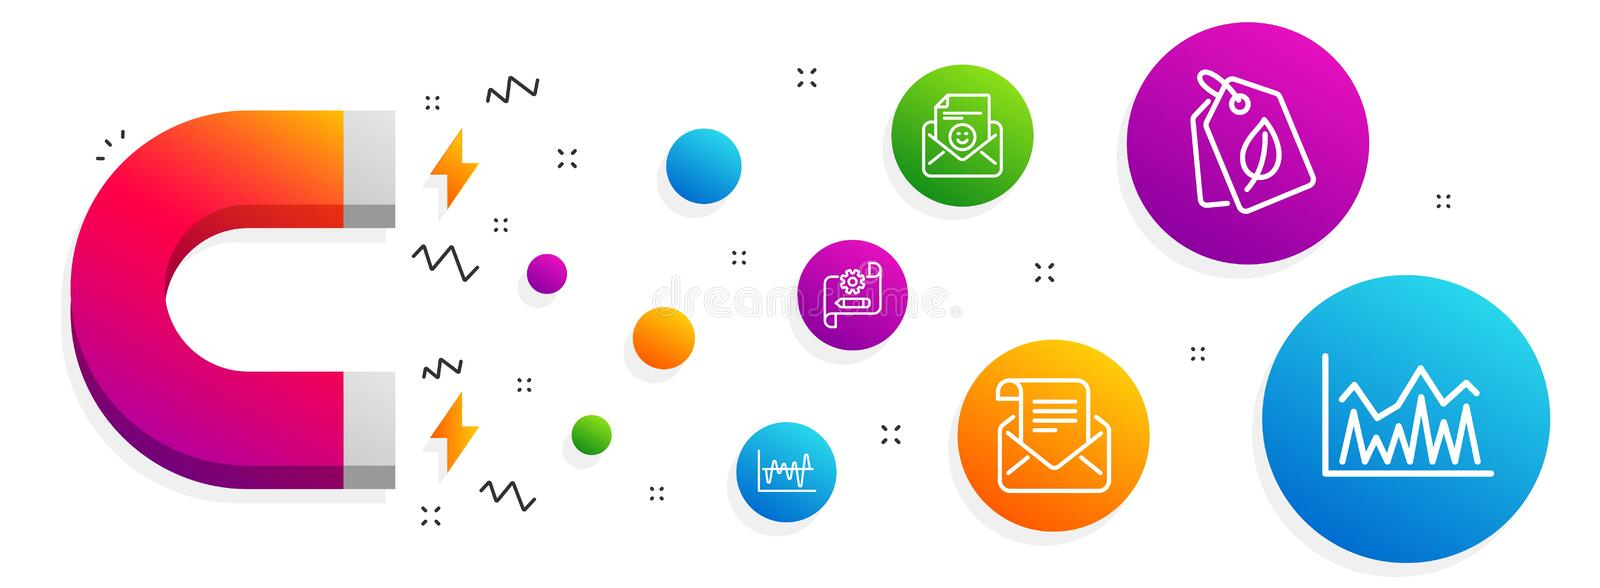 Bio tags, Stock analysis and Cogwheel blueprint icons set. Mail newsletter, Smile and Investment signs. Vector stock illustration